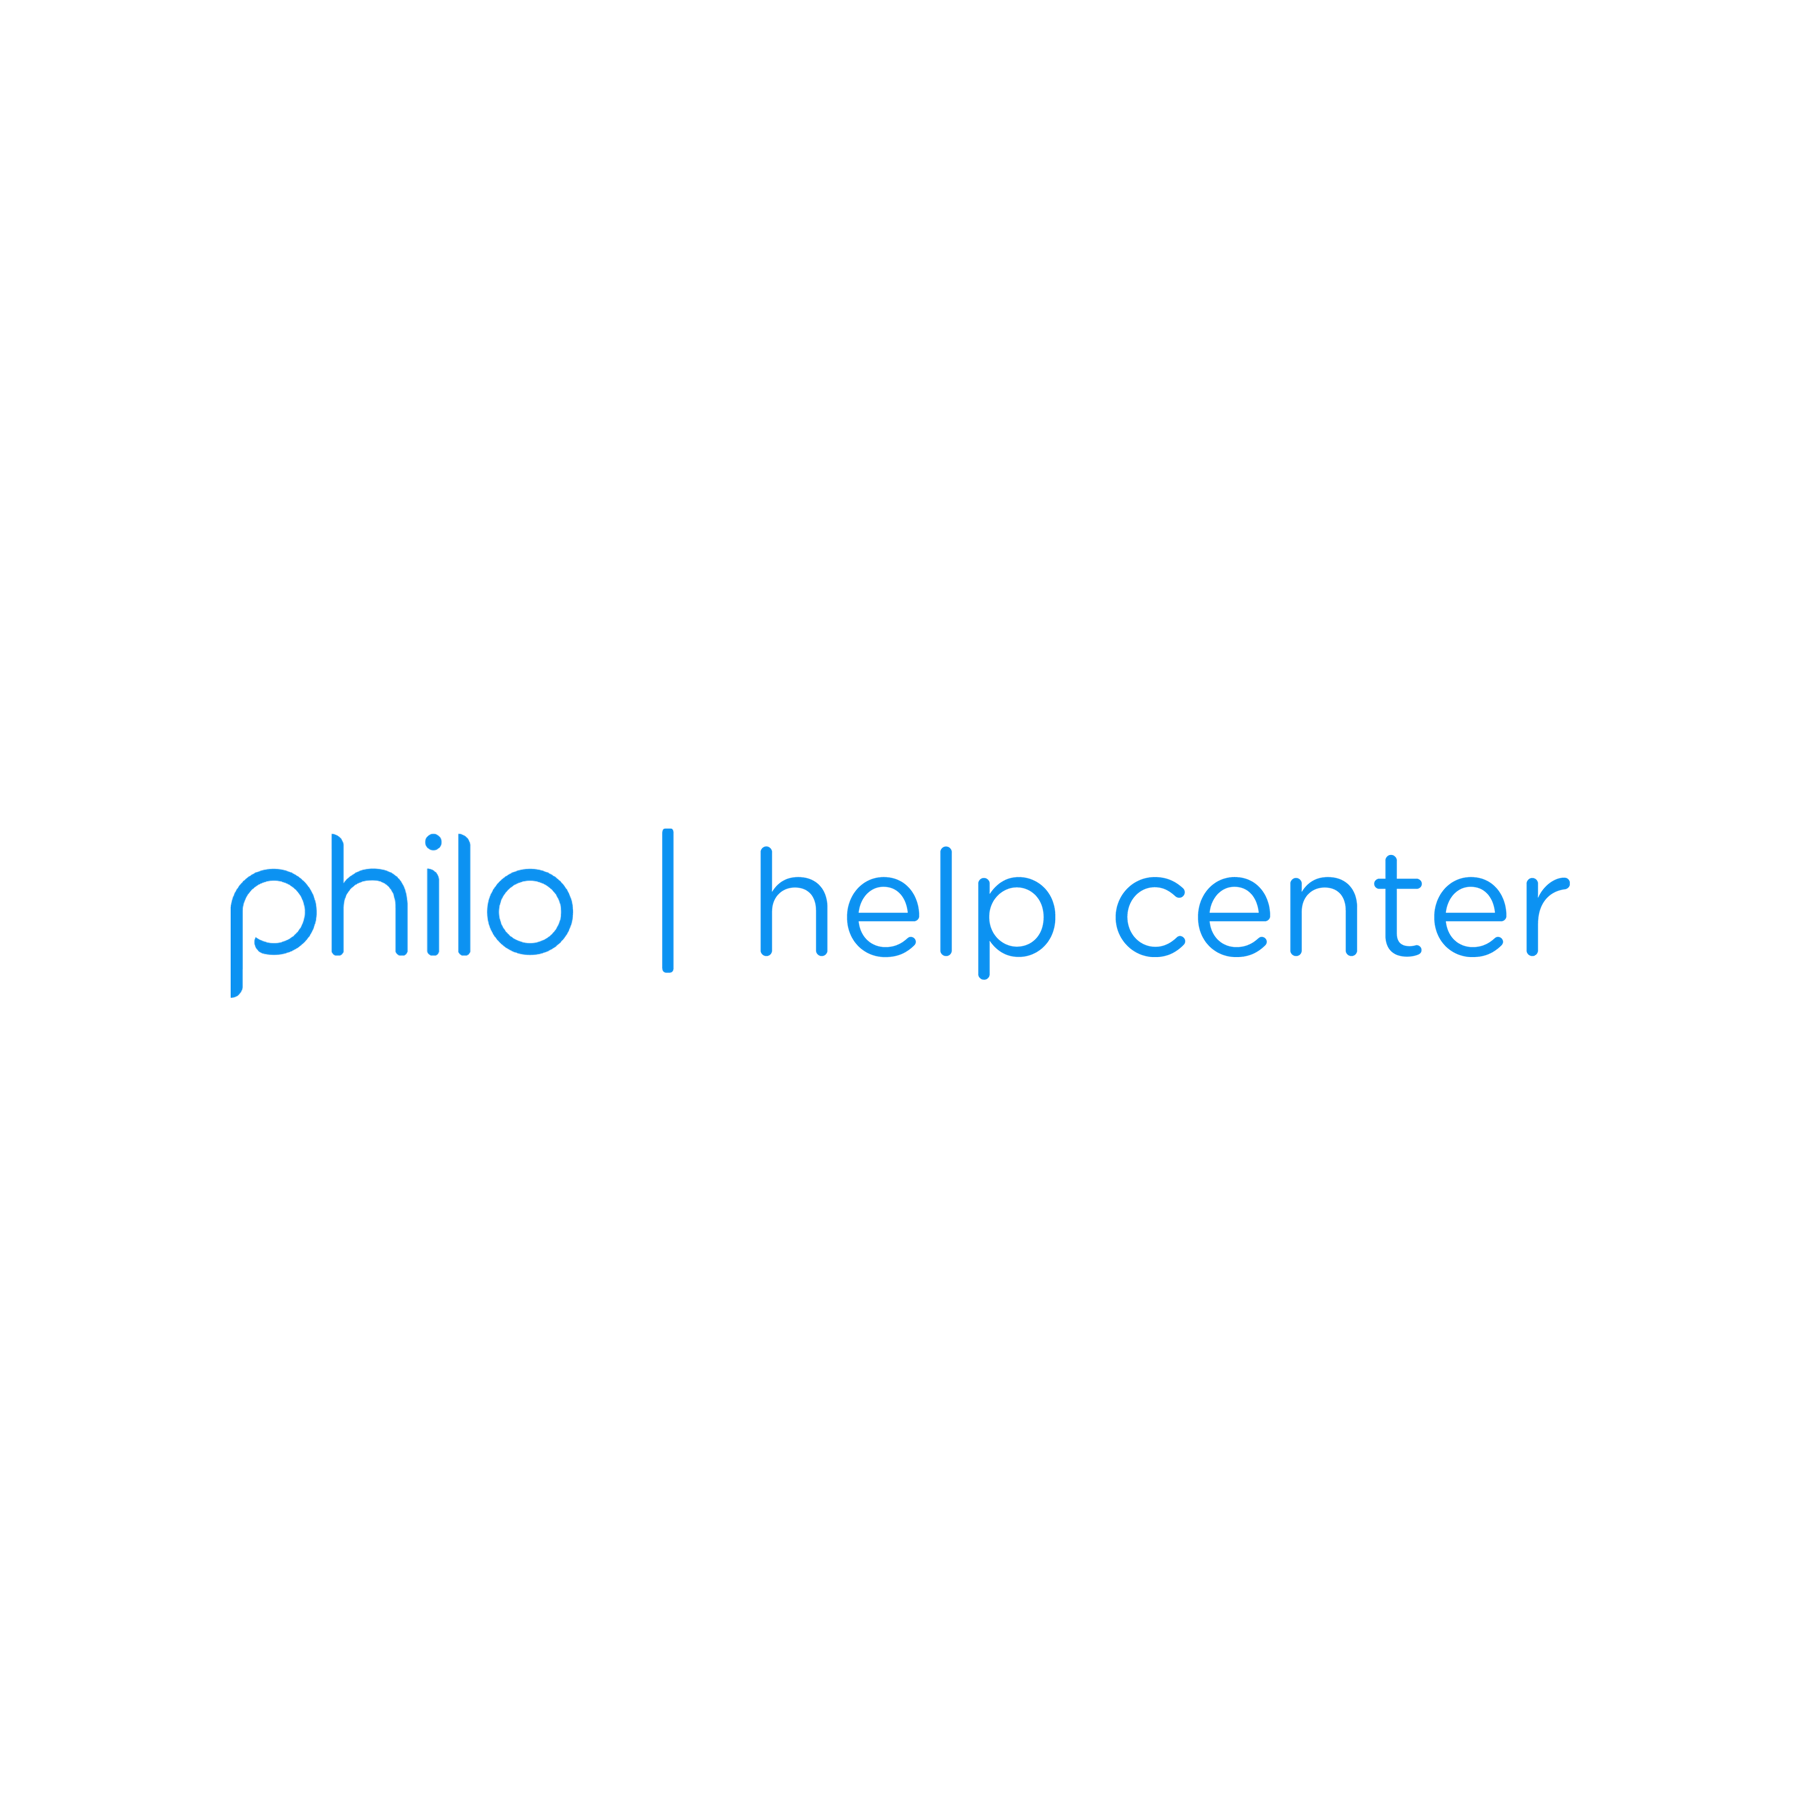 Channel lineup – Philo Help Center